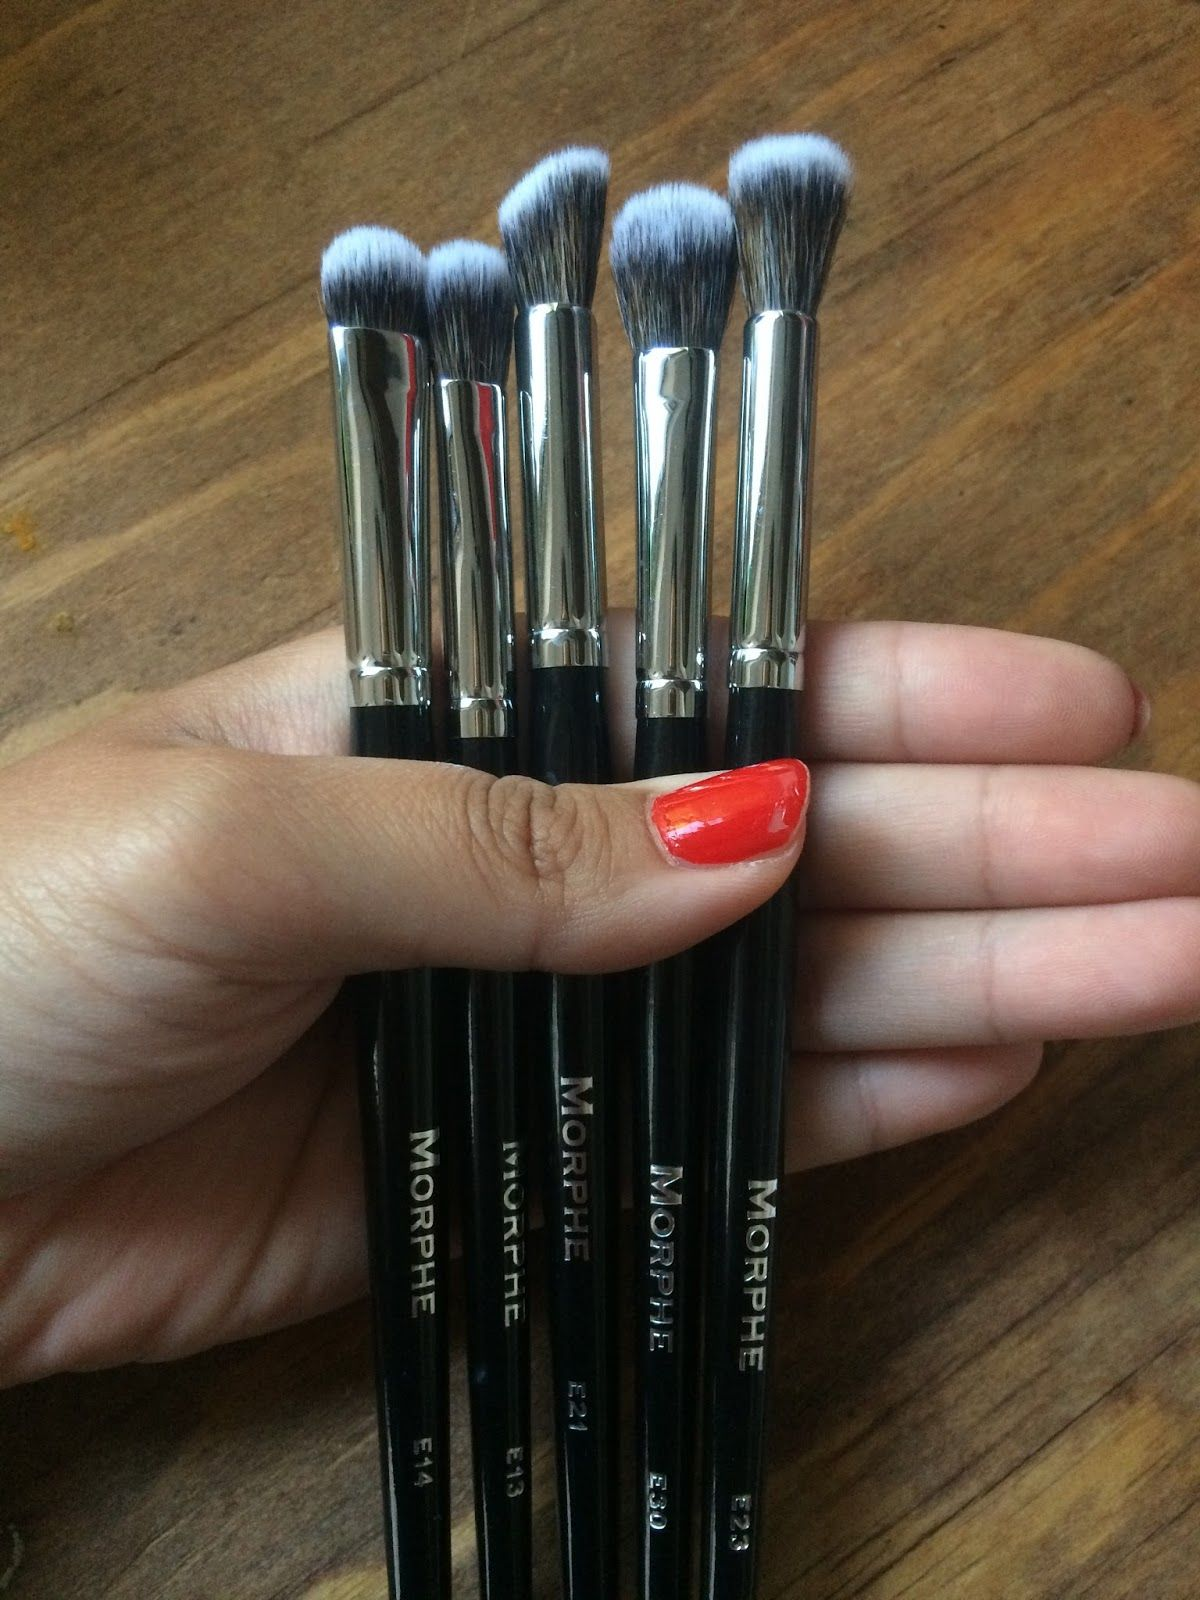 I'm up to my ears in brushes. For natural hair brushes, I